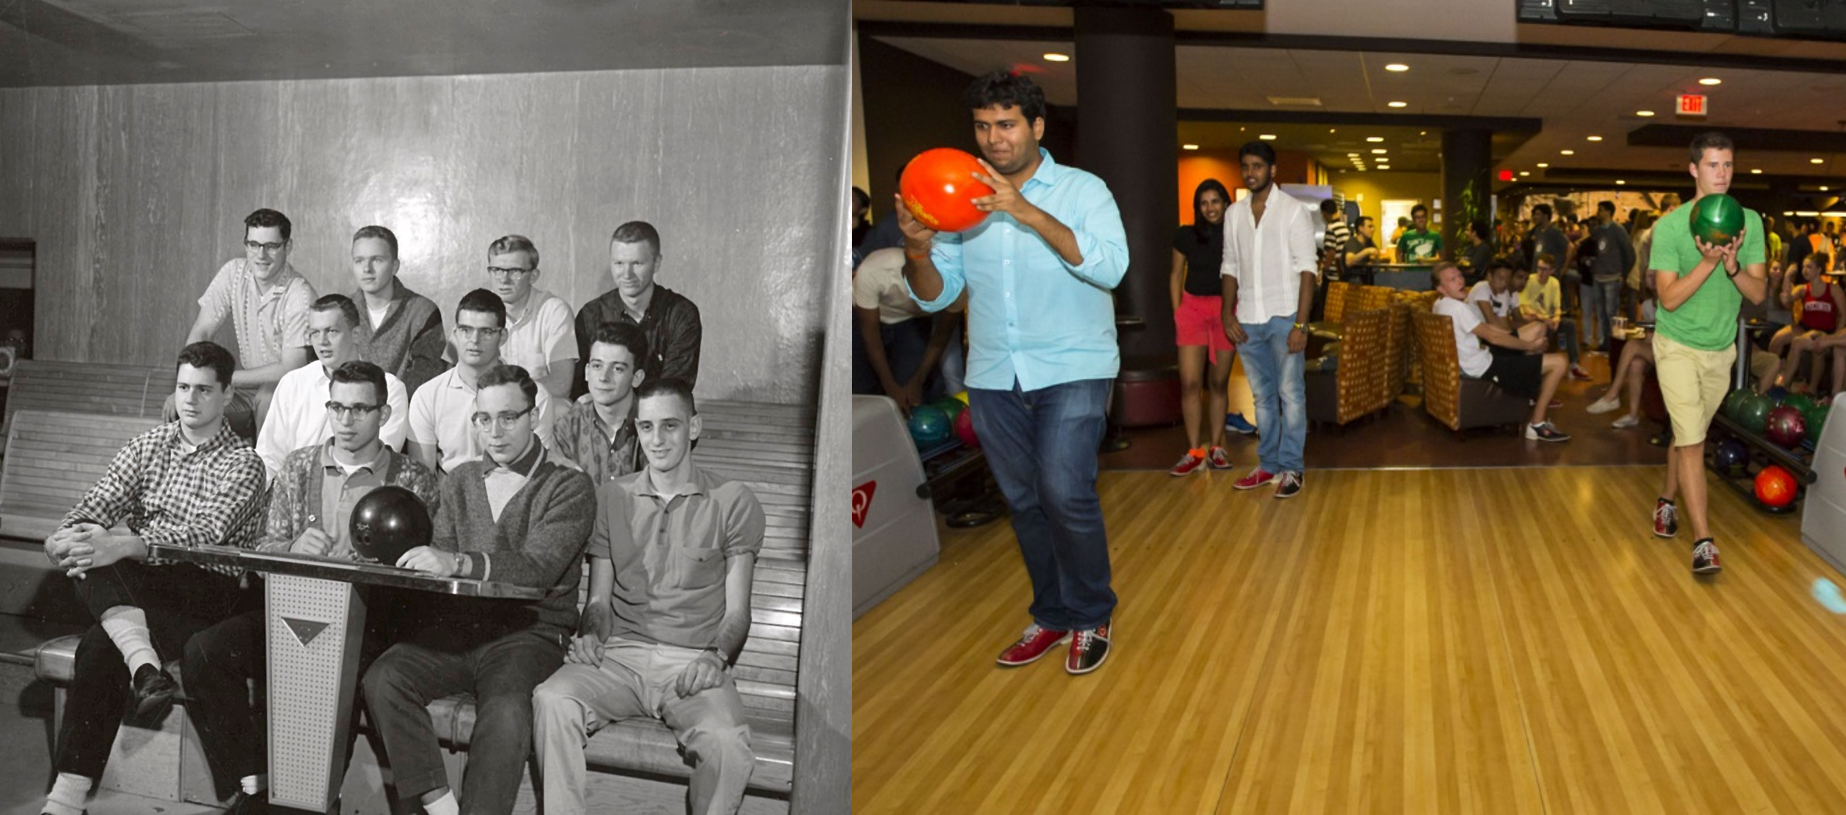 Left: Students don't spare a minute to roll strikes at a local bowling alley circa 1950. Right: Students don't have to walk far to bowl on campus nowadays: Just visit the bowling alley in Union South.